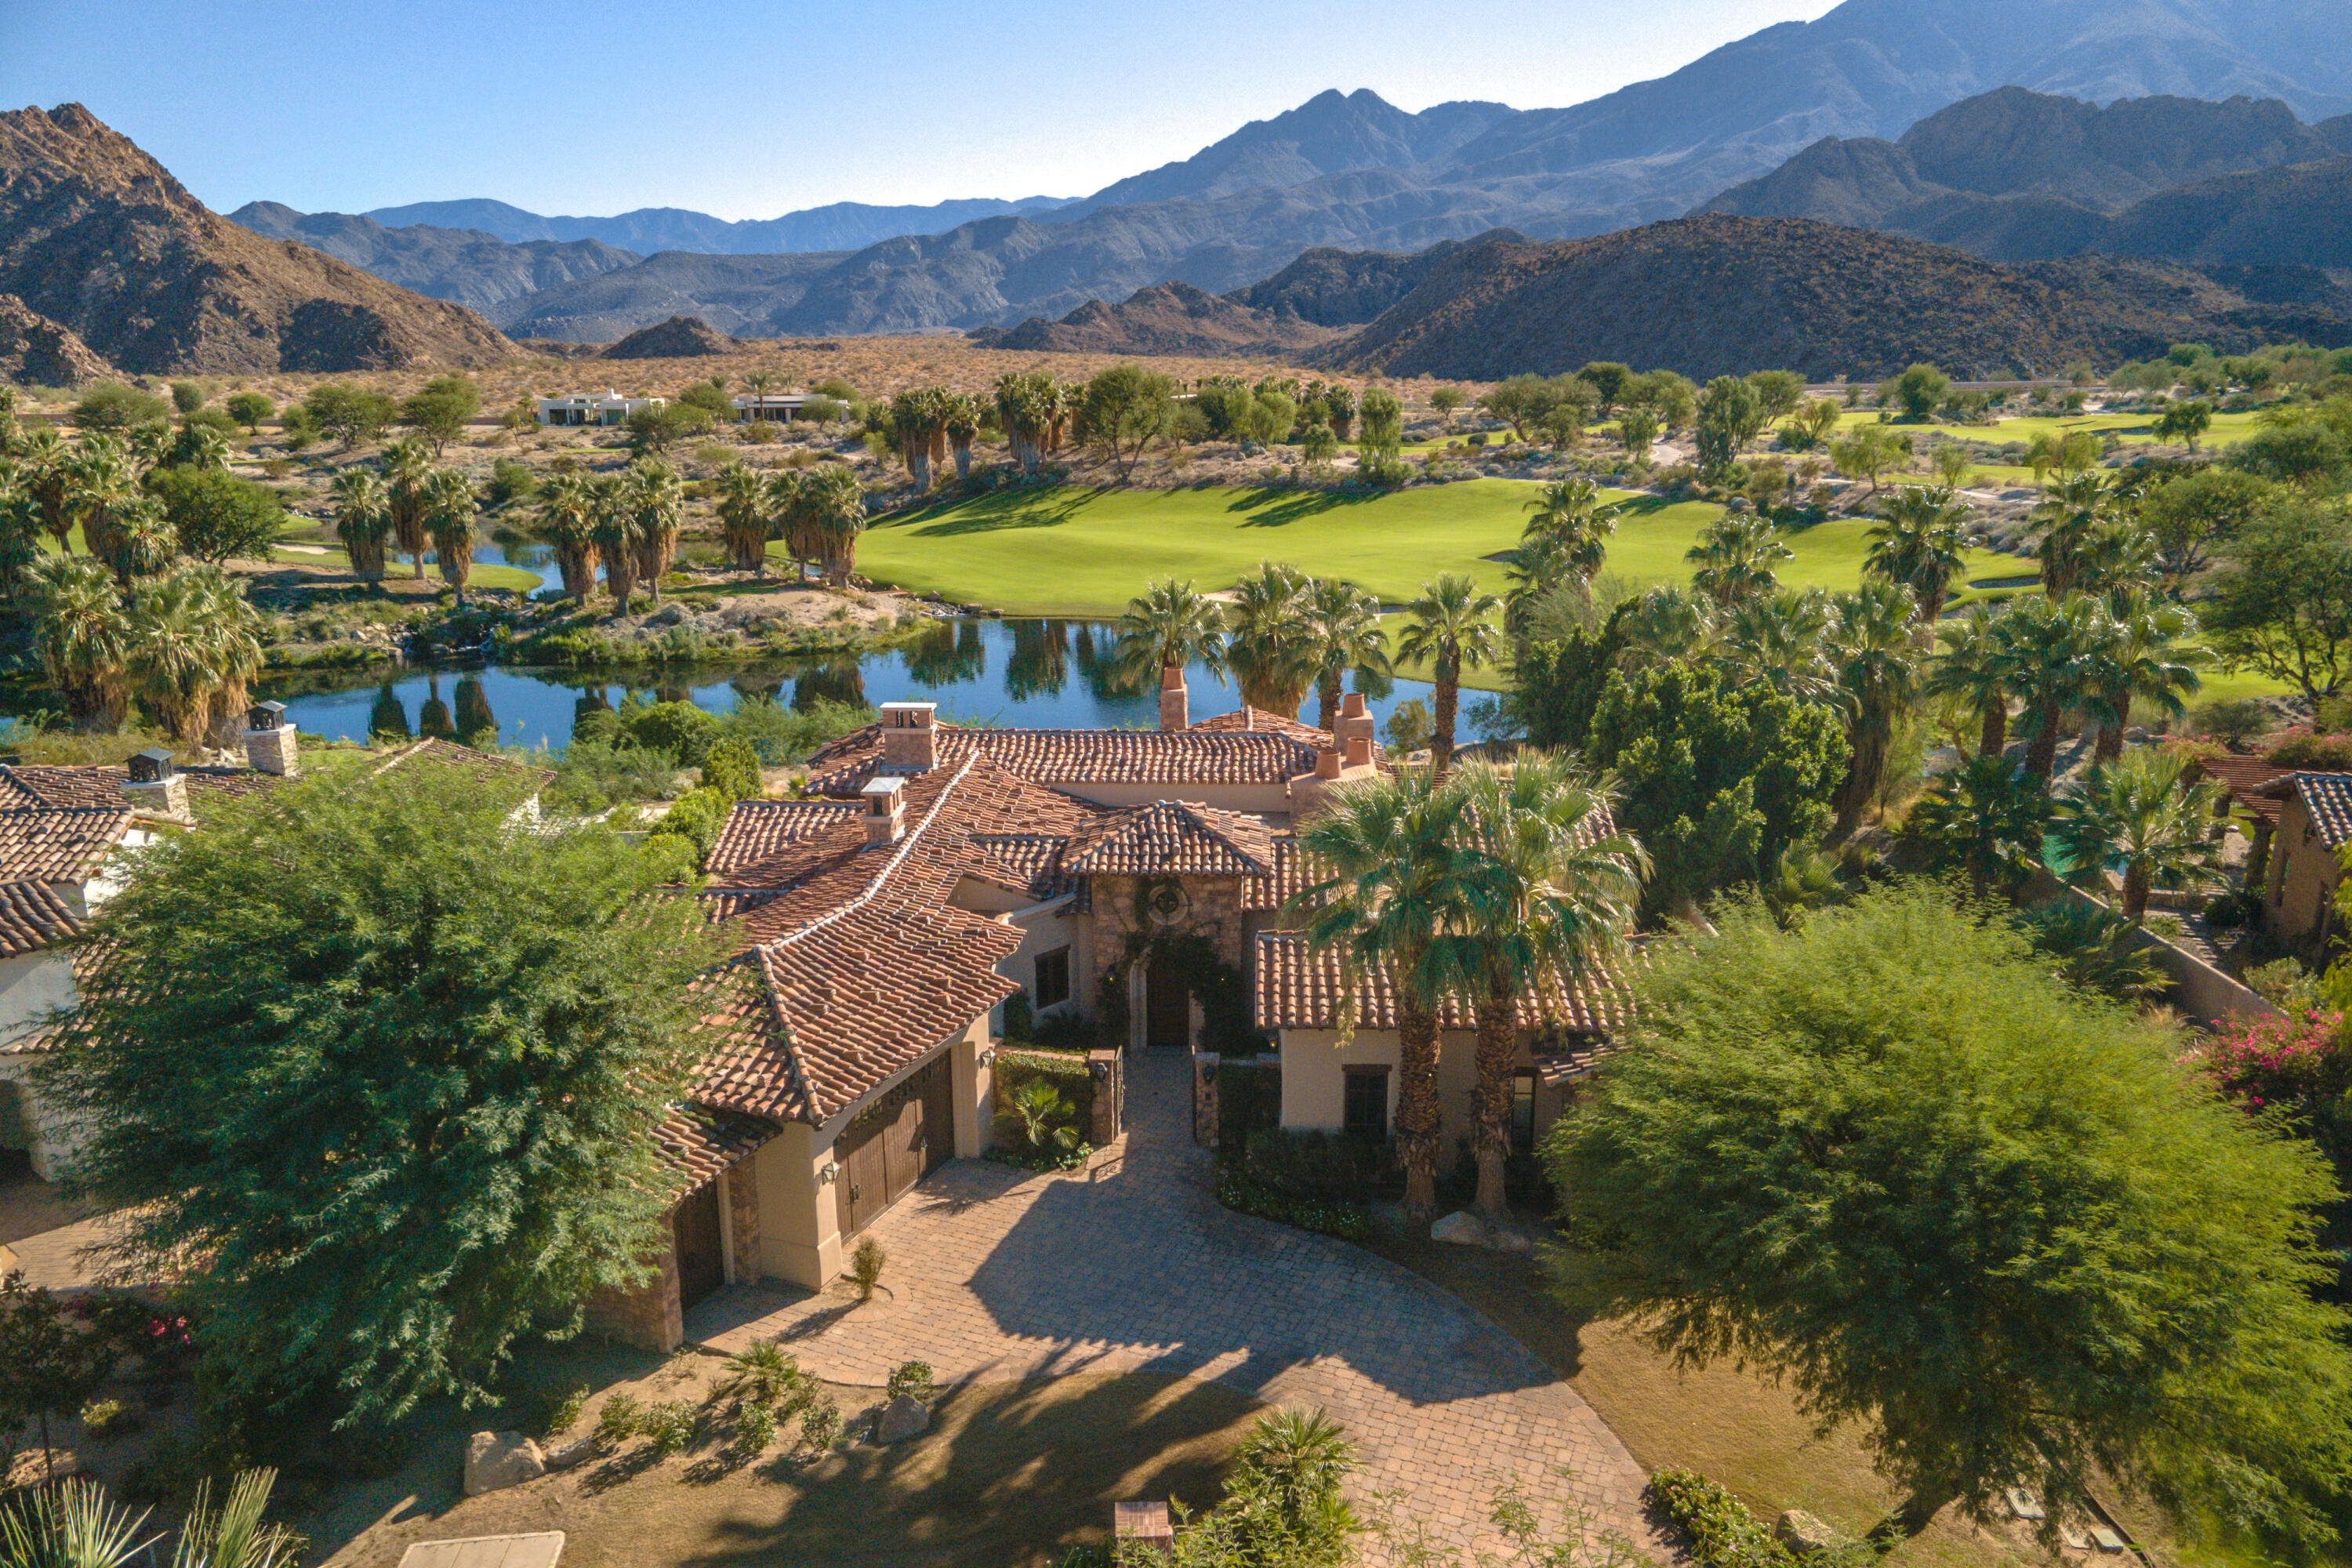 Incredible Estate Behind The Gates Of The Quarry.  With 4,161 sq ft of interior living space, this exquisite 4 bedroom & 5 bathroom home is located on a lake with stream & the lush green golf course.  The south facing backyard has an oversized pool & spa, wrap around patio & outdoor kitchen with sweeping panoramic views of Coral & Santa Rosa Mountains.  Upon formal entry, feel the richness of stone walls & wood floors.  Recently remodeled kitchen features white cabinets, quartz counters, Subzero refrigerator, Viking Stove & opens to the living room.  Living area features wood beam ceilings, fireplace & walls of glass opening to the course & mountains.  Separate oversized den with fireplace is currently a game room & could also be a media room.  Elegant master suite with fireplace has dual walk in closets, separate tub & walk in shower plus dual vanities.  Two additional en suite bedrooms in main residence.  Casita with wood beam ceilings opens to the courtyard.  The Old World charm & contemporary touches make this an incredible home with one of the best views in The Quarry.  Home is strategically located very close to the clubhouse.  The Quarry is a highly rated private golf community with an 18 hole executive & top tier short course.  Home is being offered turn key furnished.